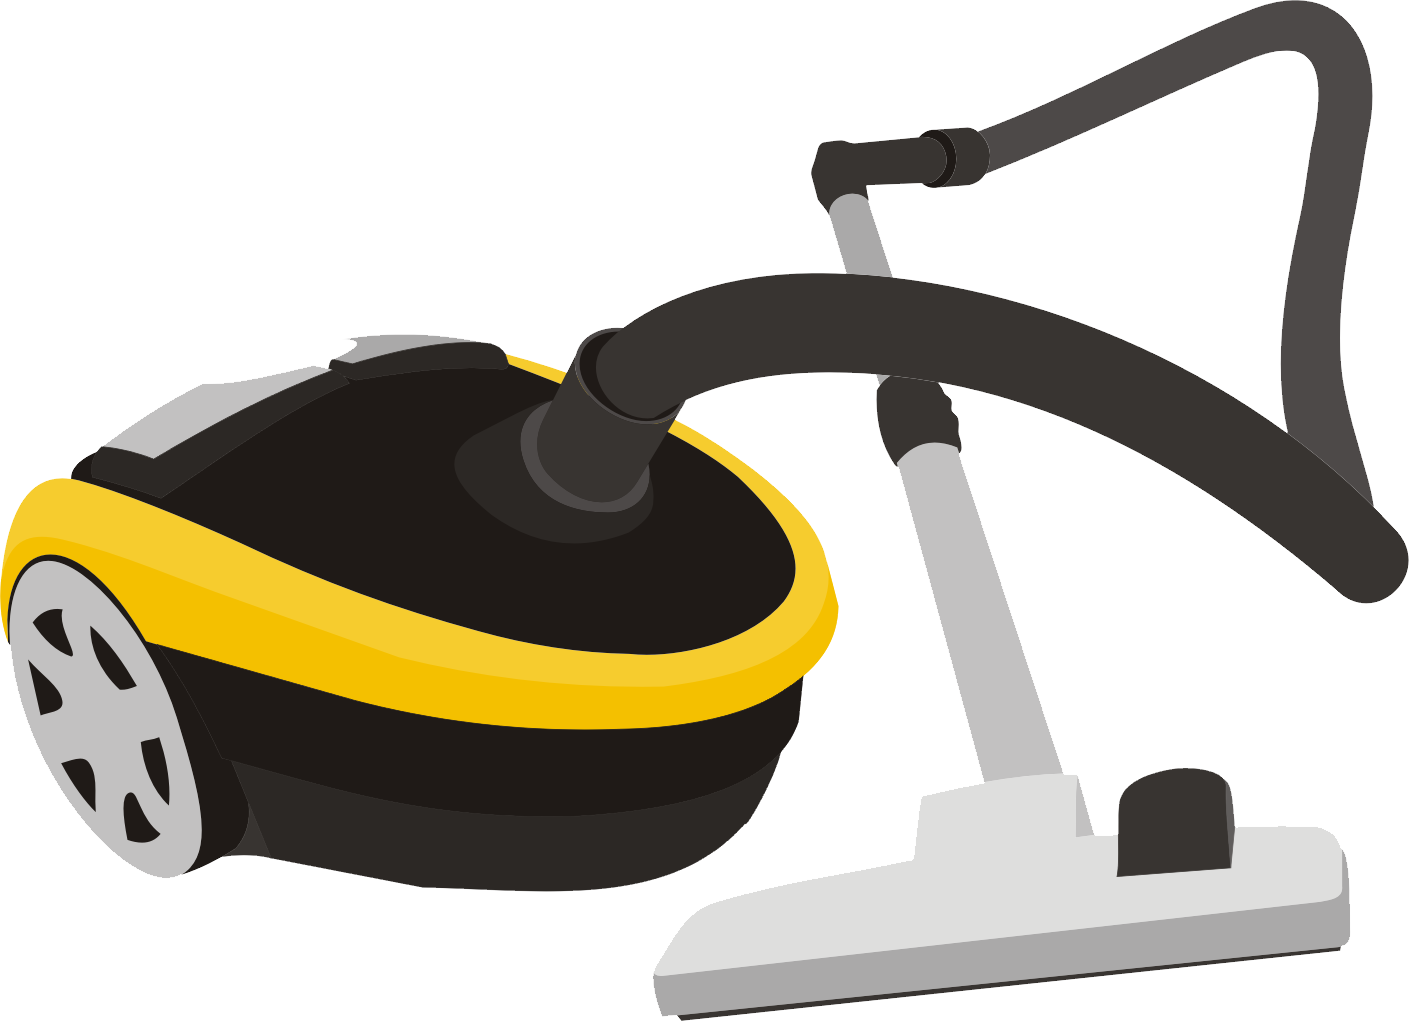 Vacuum transparent clipart. Small cleaner png image